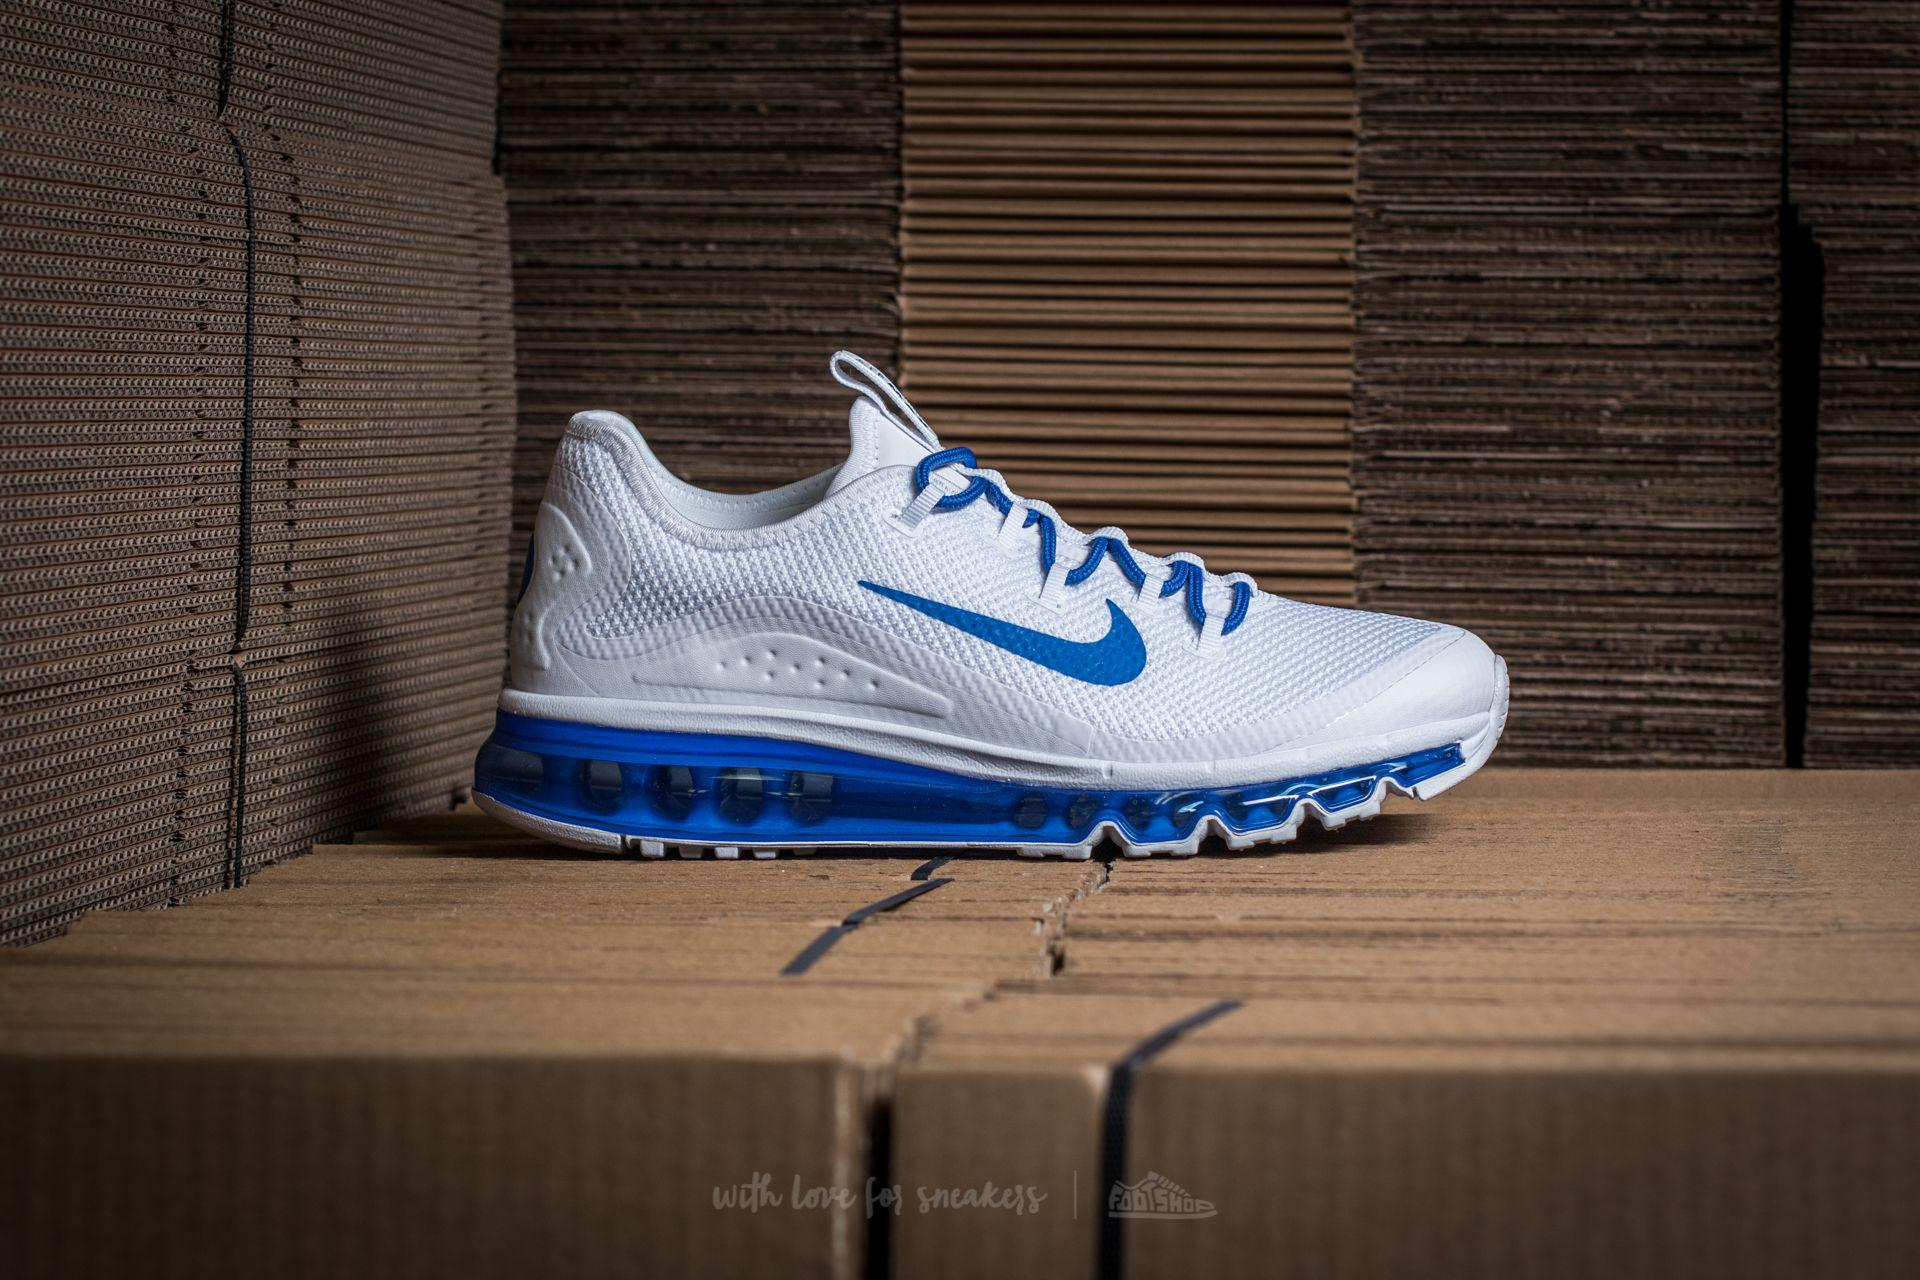 9cc4316ebed Lyst - Nike Air Max More White  Game Royal-white in White for Men